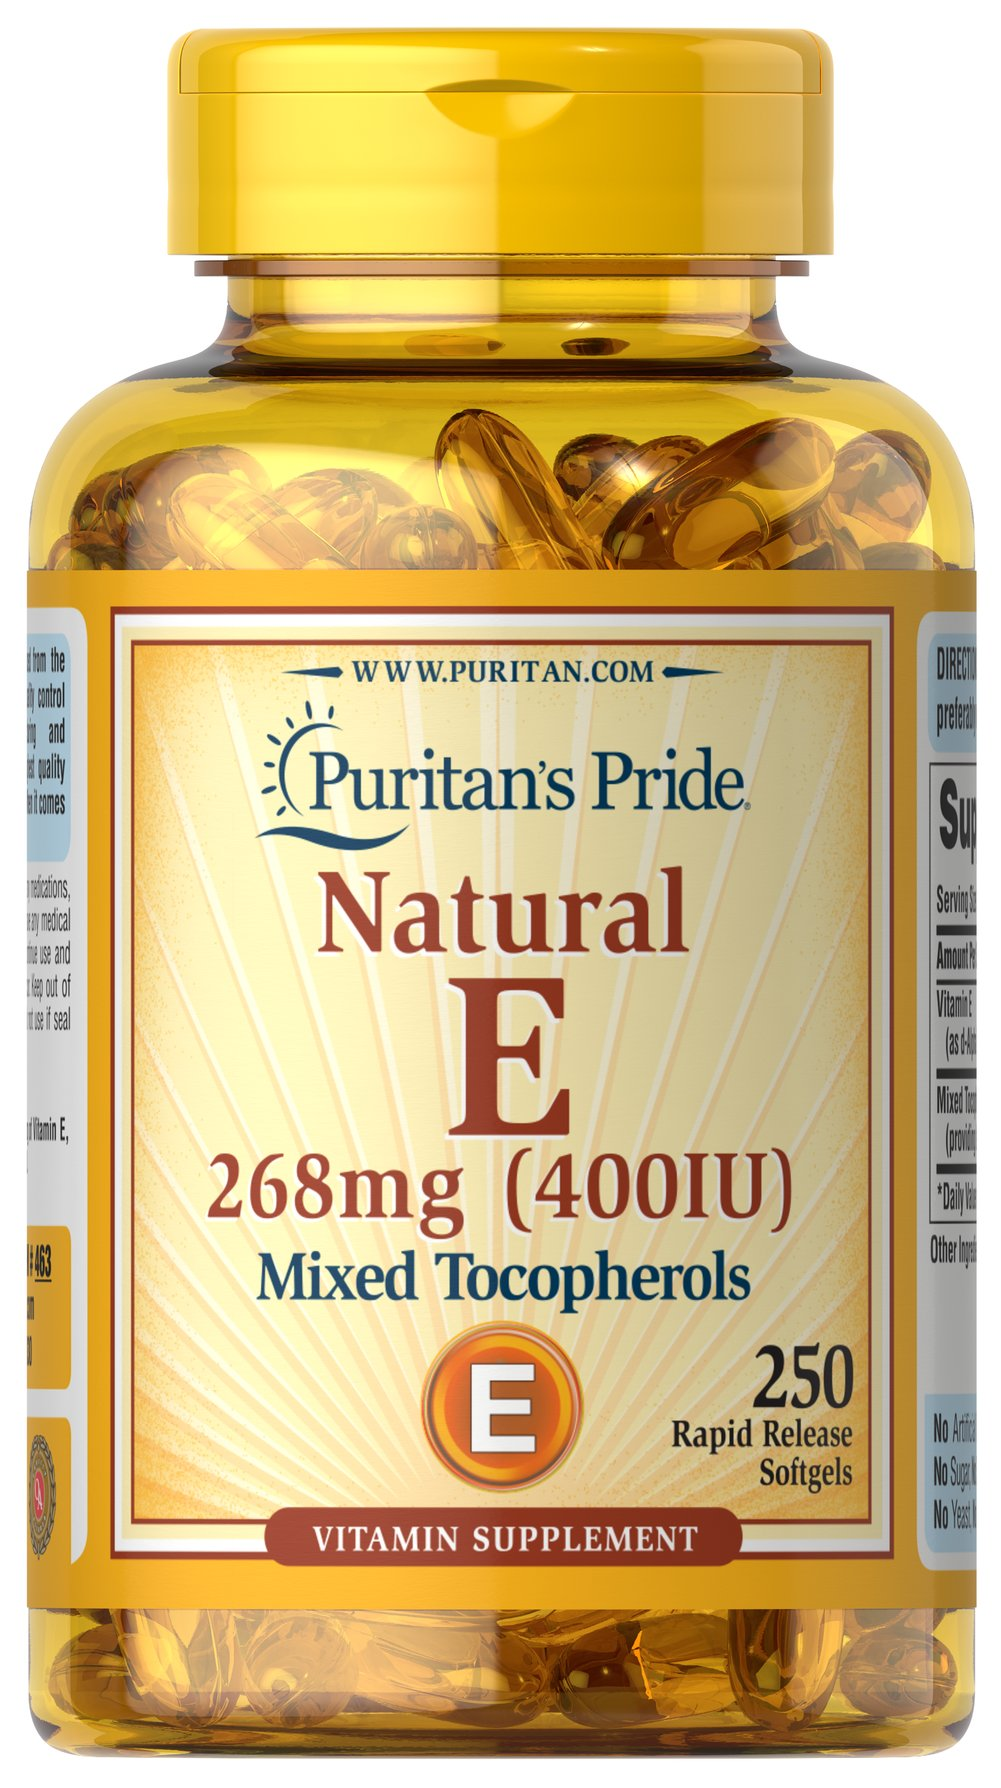 Vitamin E-400 iu Mixed Tocopherols Natural <p><strong>Vitamin E</strong> promotes immune function and helps support cardiovascular health.** Vitamin E is also a powerful <strong>antioxidant</strong> that helps fight cell-damaging free radicals in the body.** Studies have shown that oxidative stress caused by free radicals may contribute to the premature aging of cells.**</p> 250 Softgels 400 IU $35.23